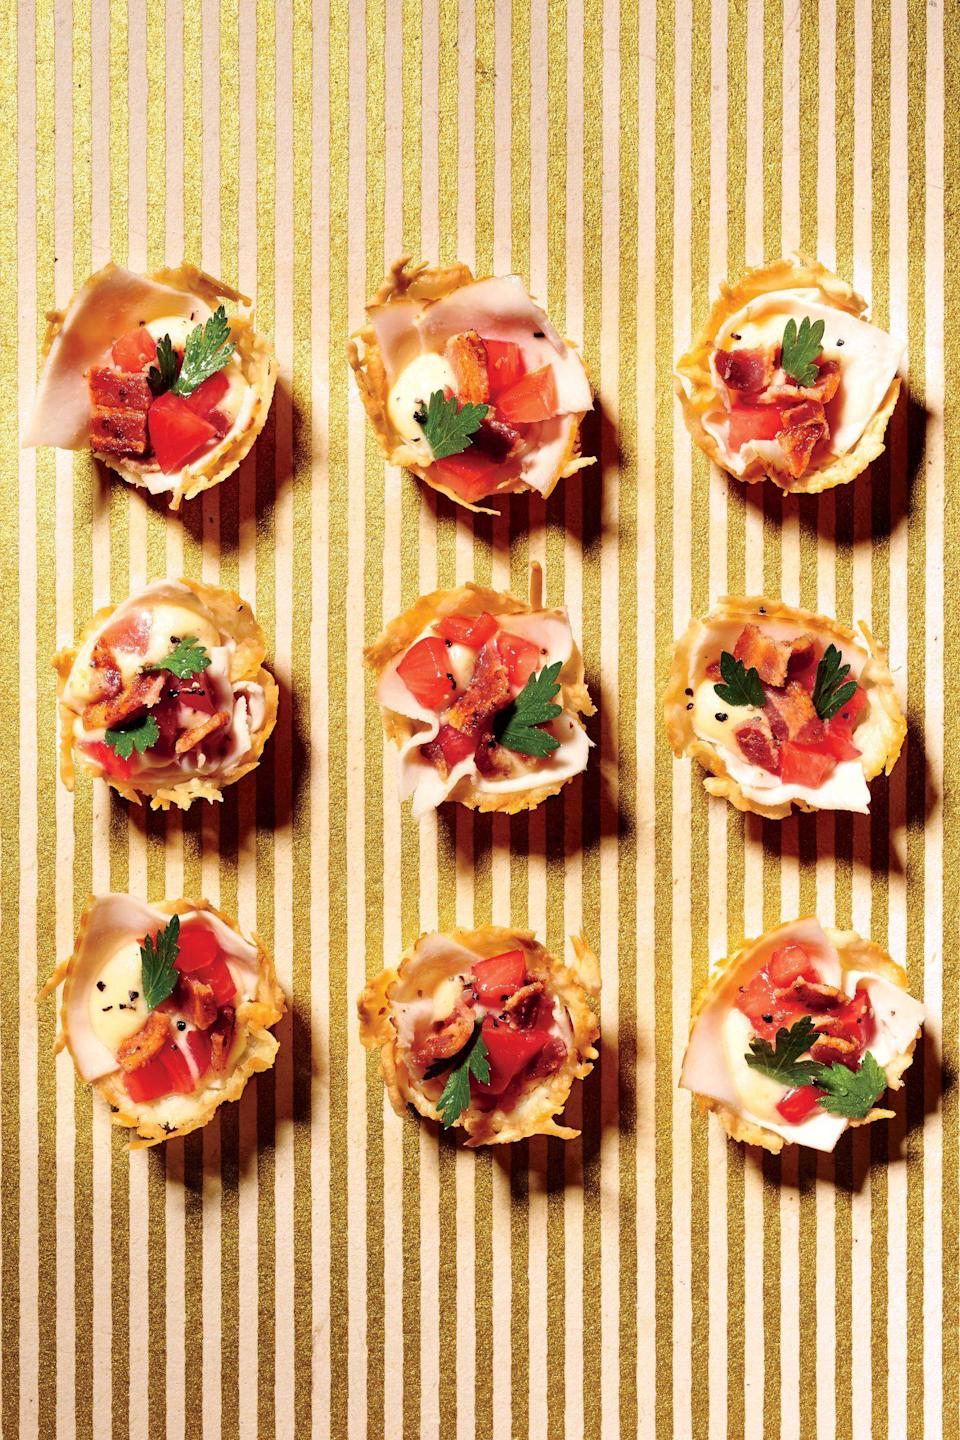 """<p><strong>Recipe: <a href=""""https://www.southernliving.com/syndication/inside-out-hot-brown-bites"""" rel=""""nofollow noopener"""" target=""""_blank"""" data-ylk=""""slk:Inside-Out Hot Brown Bites"""" class=""""link rapid-noclick-resp"""">Inside-Out Hot Brown Bites</a></strong></p> <p>This recipes proves that Kentucky's signature sandwich can be enjoyed in bite-size form. </p>"""